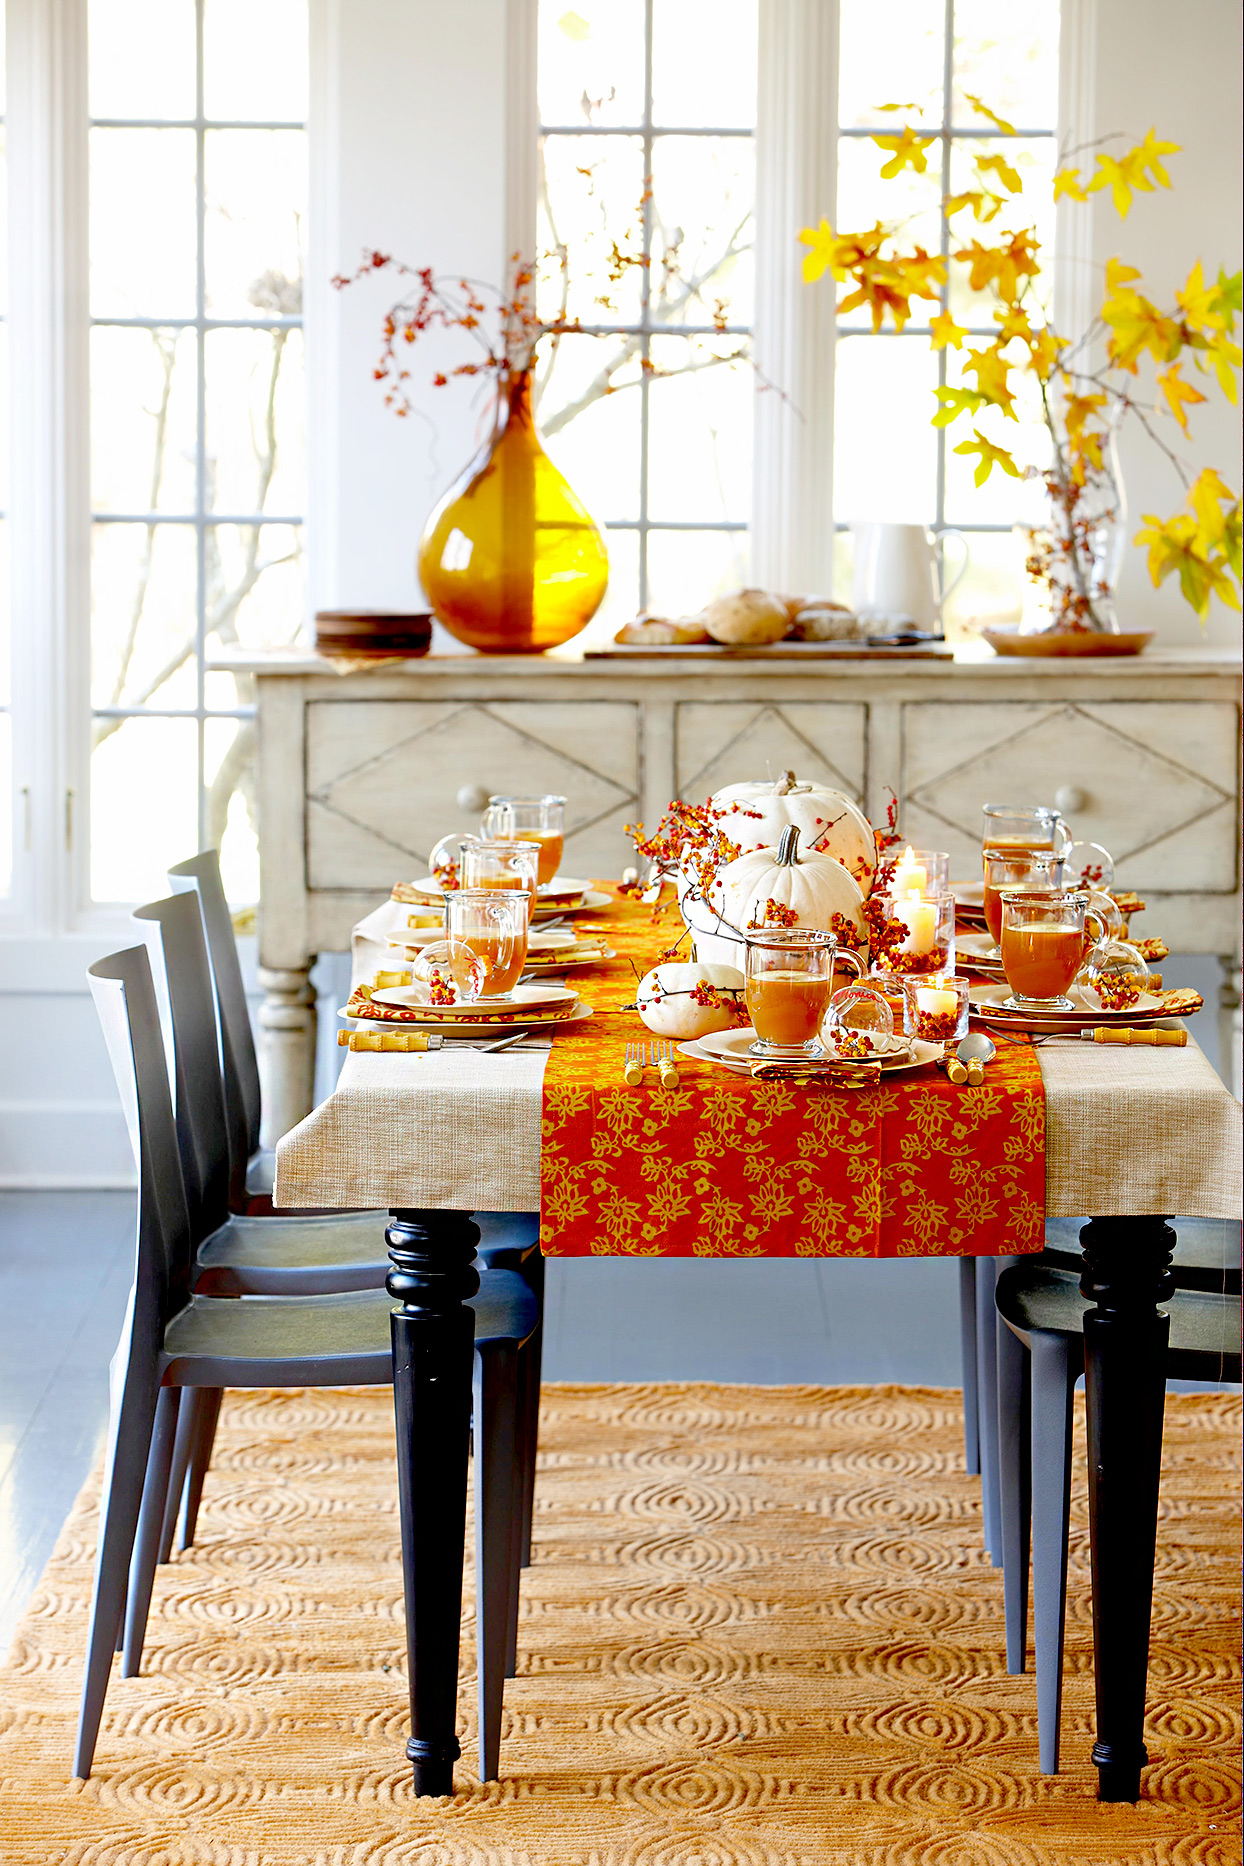 Dining table with orange table runner and pumpkin centerpiece